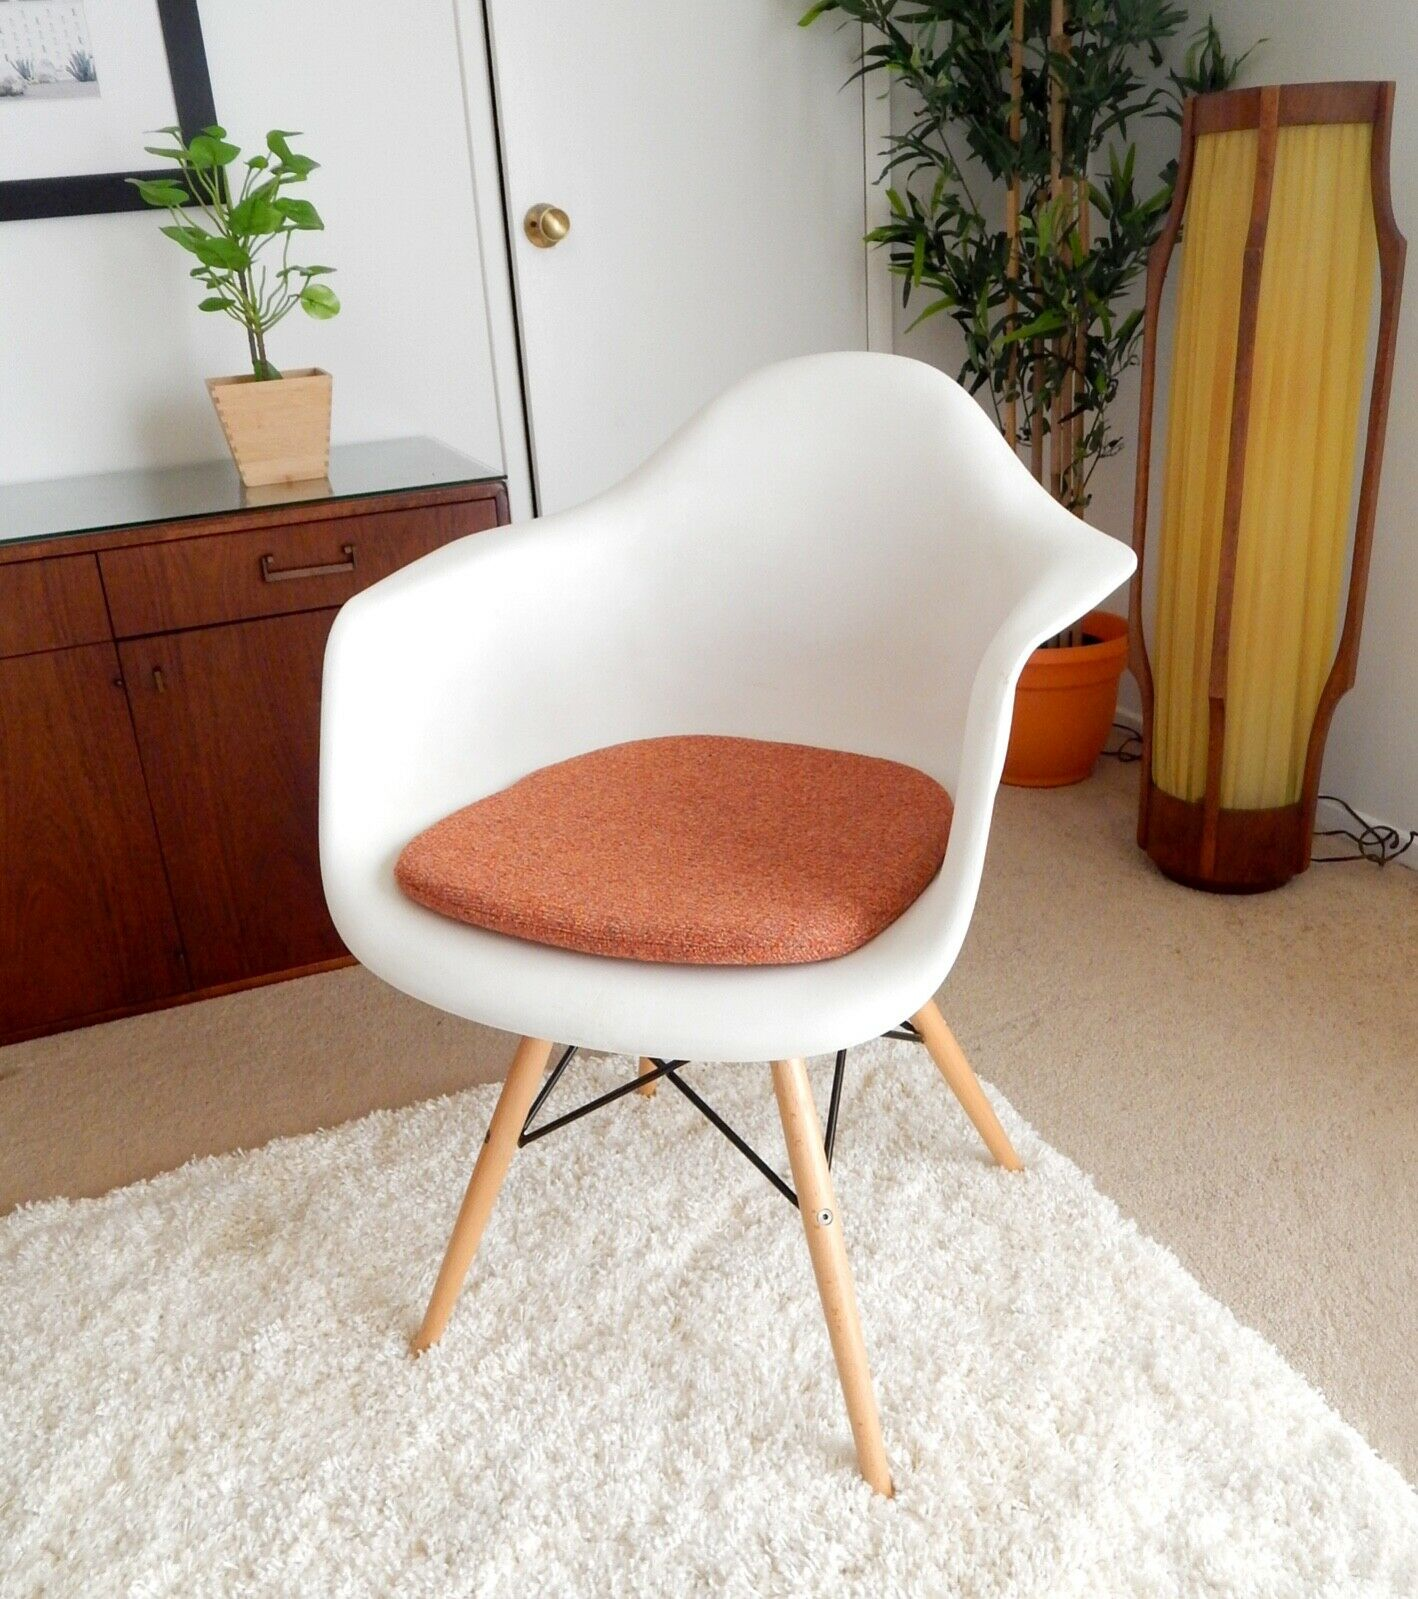 Cushion for Eames Molded Plastic Arm Chair - Mid Century Herman Miller